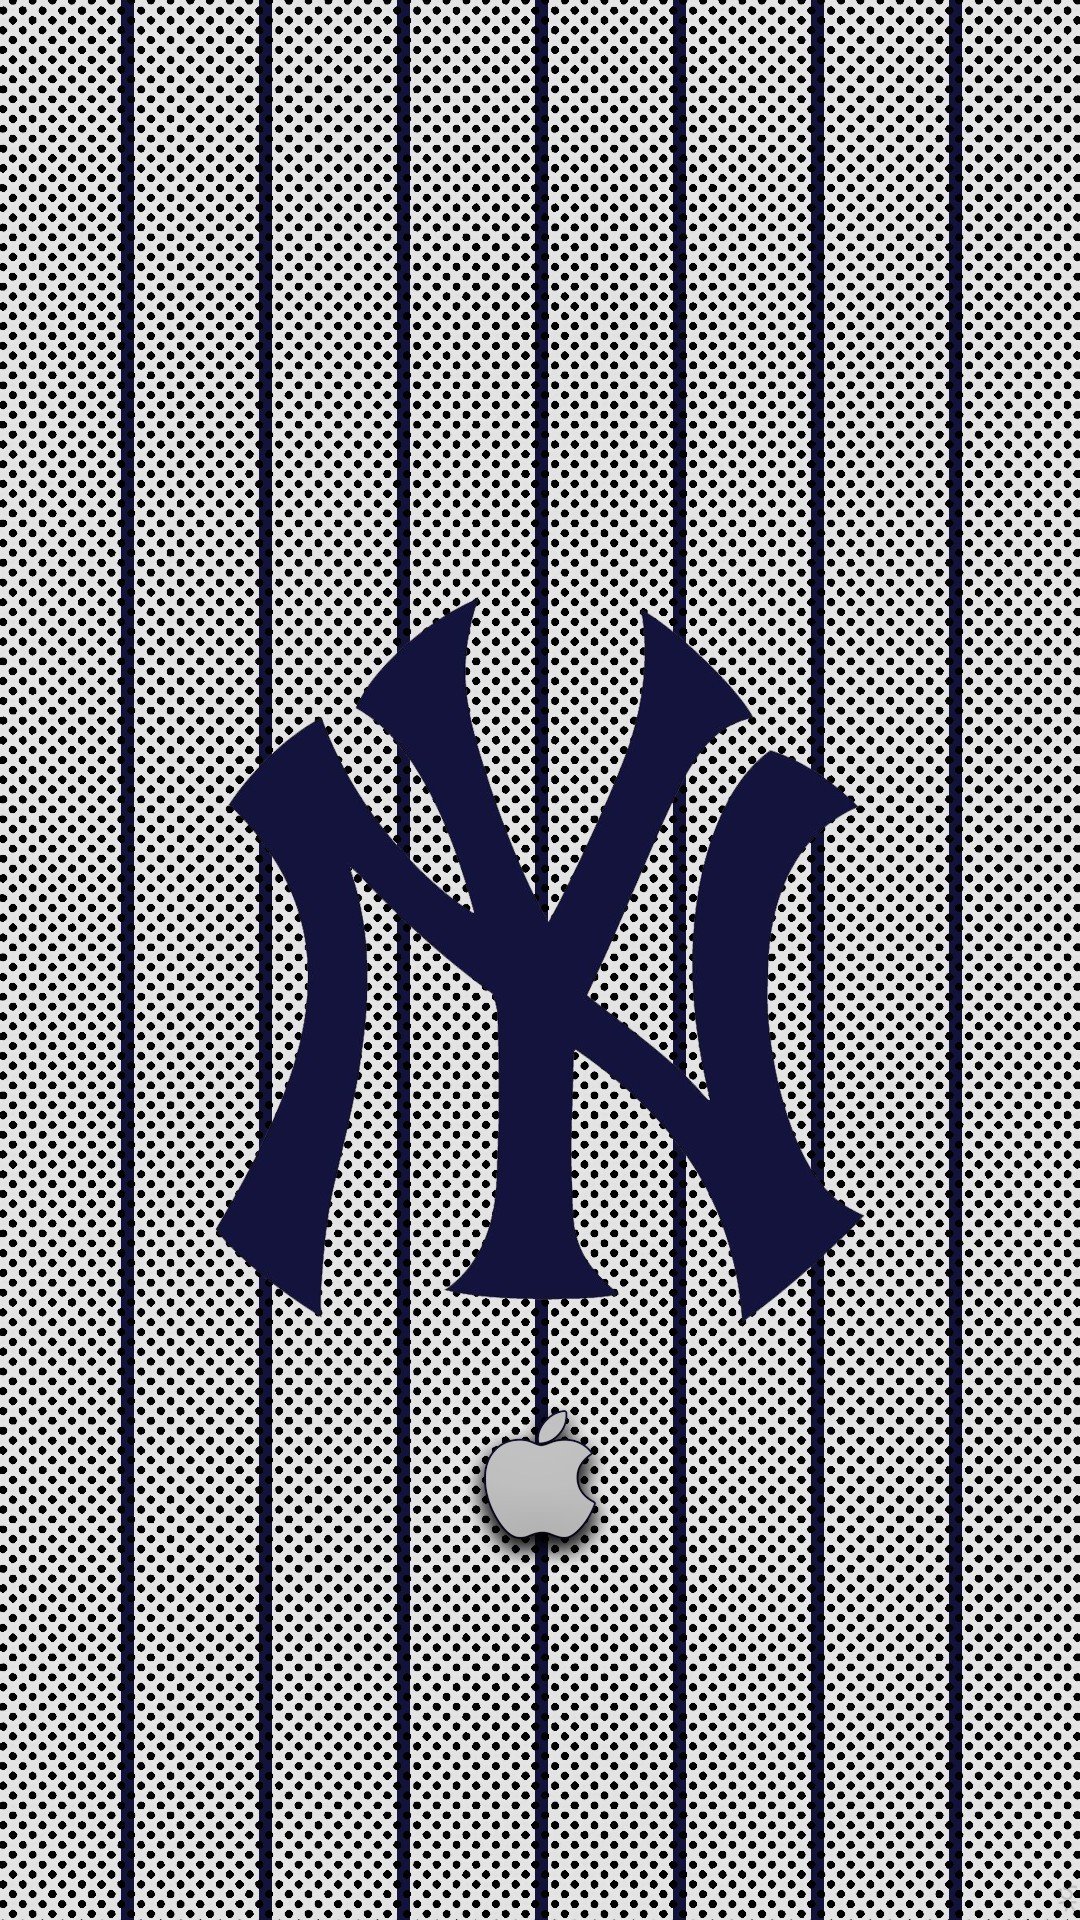 from Ivan gay new york yankees